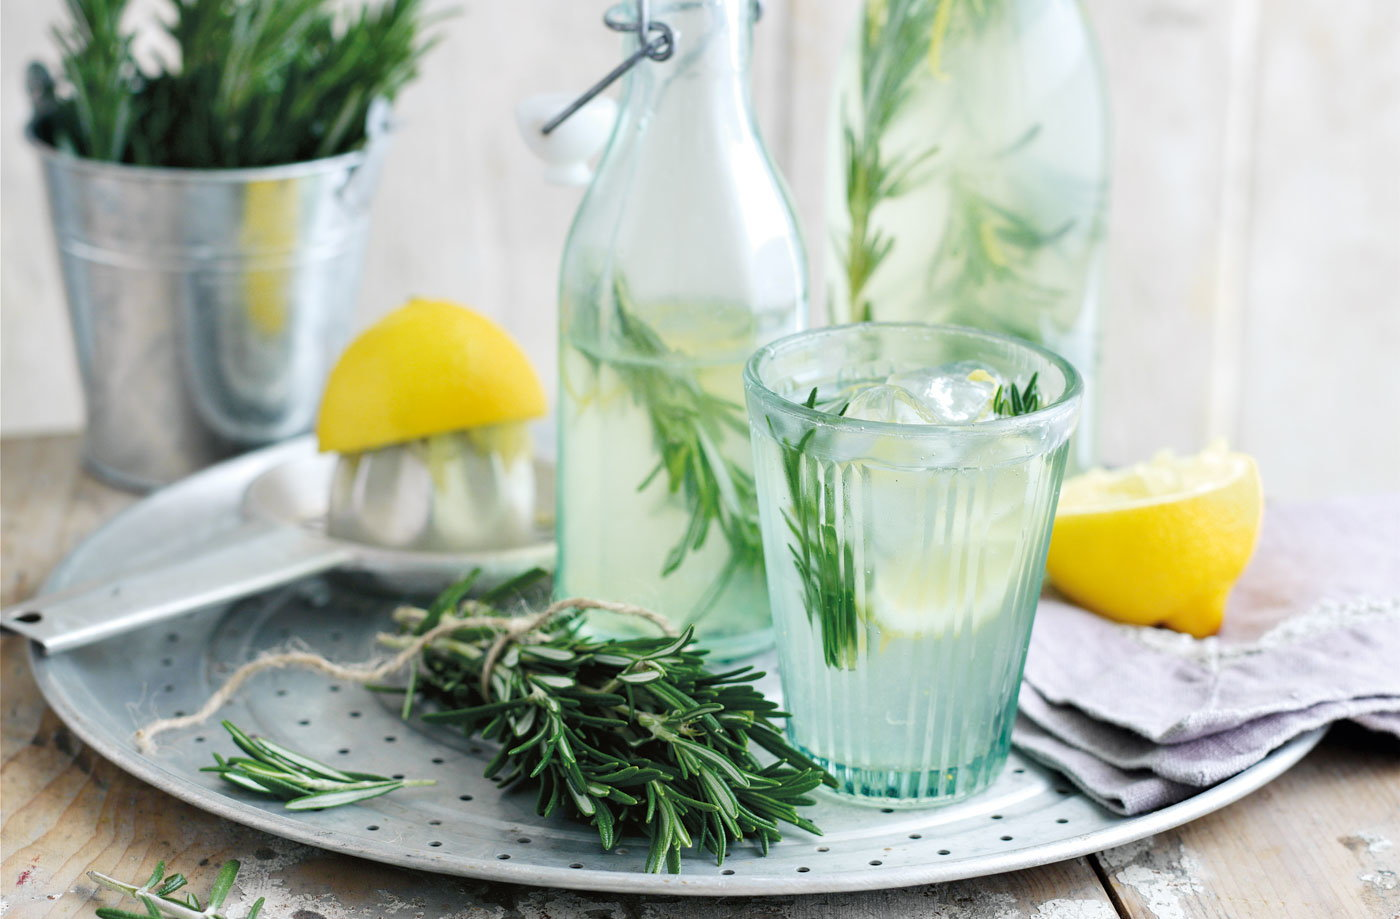 Rosemary-infused lemonade recipe